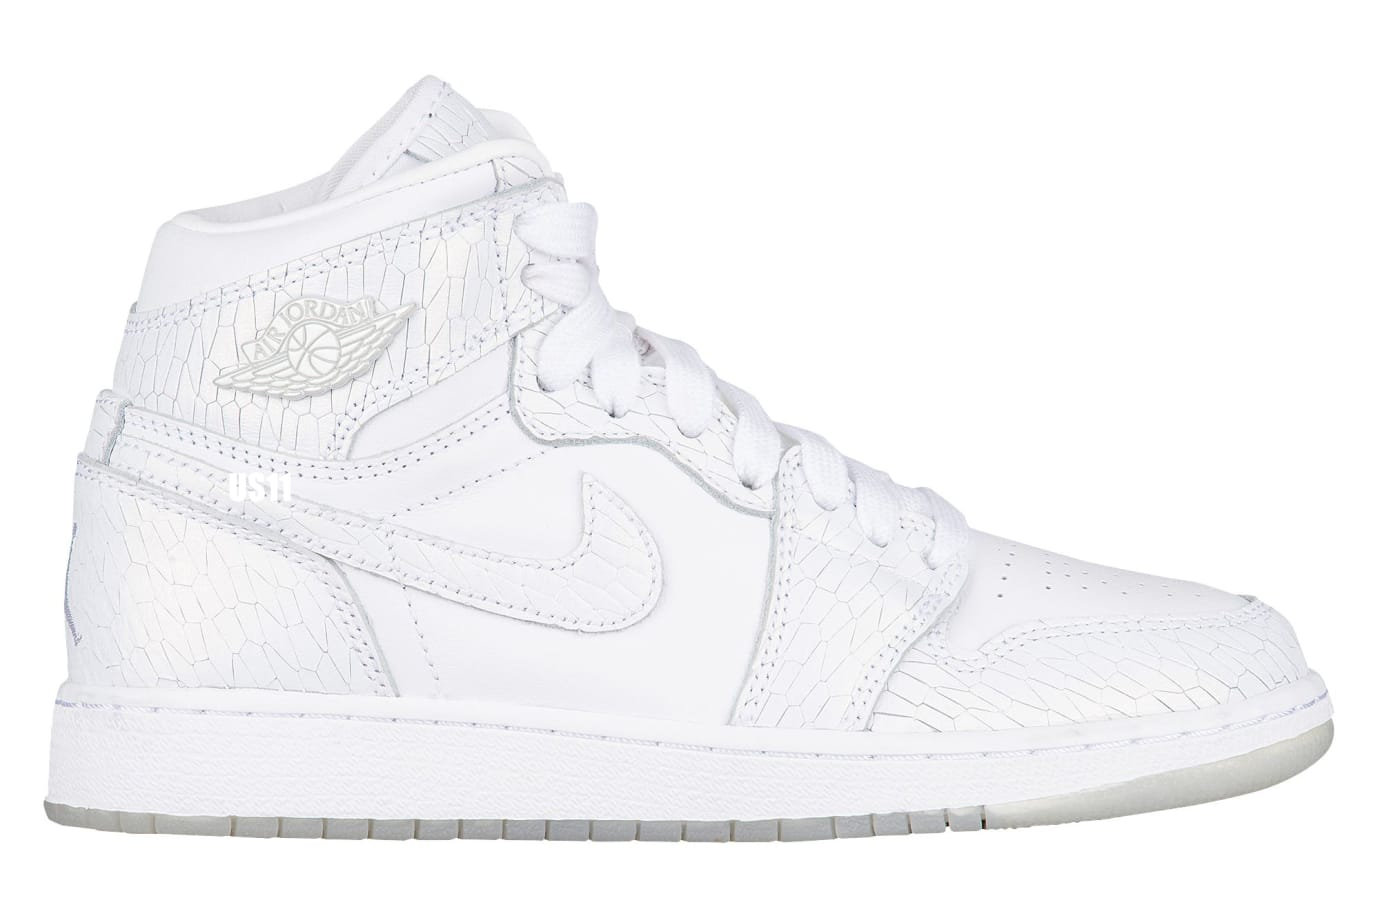 Air Jordan 1 Heiress Frost White Release Date